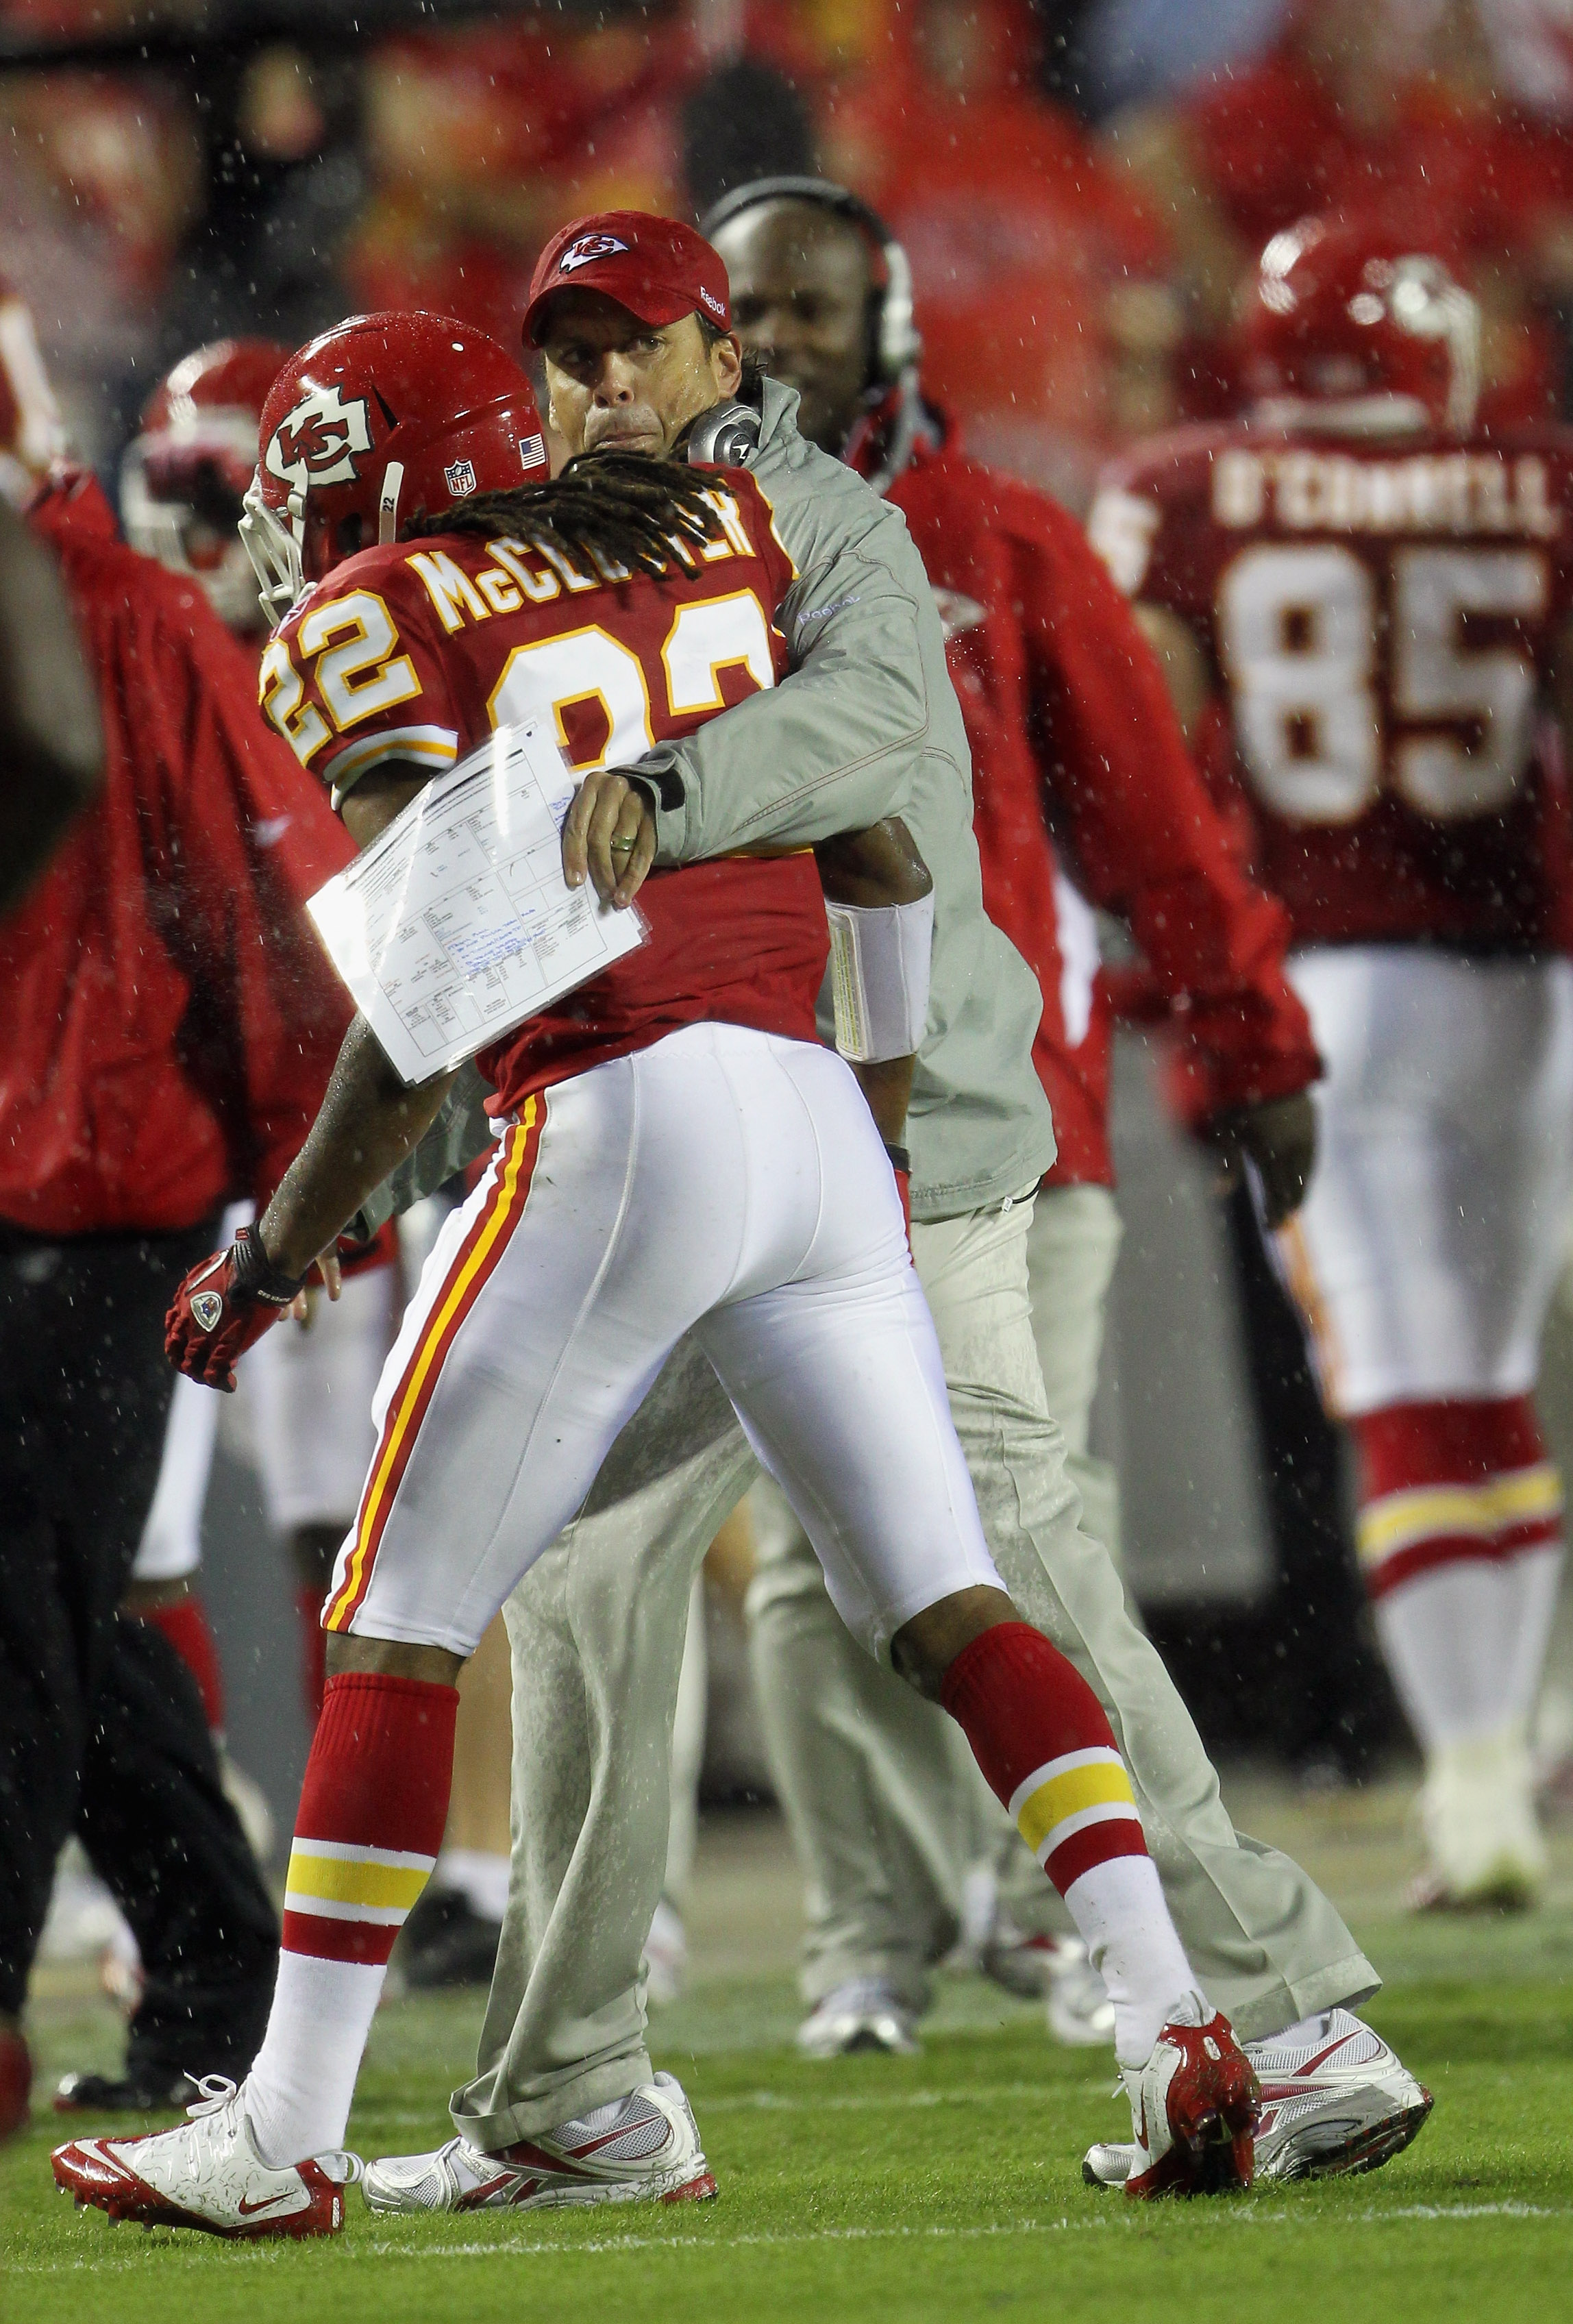 KANSAS CITY, MO - SEPTEMBER 13:  Dexter McCluster #22 of the Kansas City Chiefs is congratulated by head coach Todd Haley after returning a punt for a touchdown during the 1st half of the game against on September 13, 2010 at Arrowhead Stadium in Kansas C